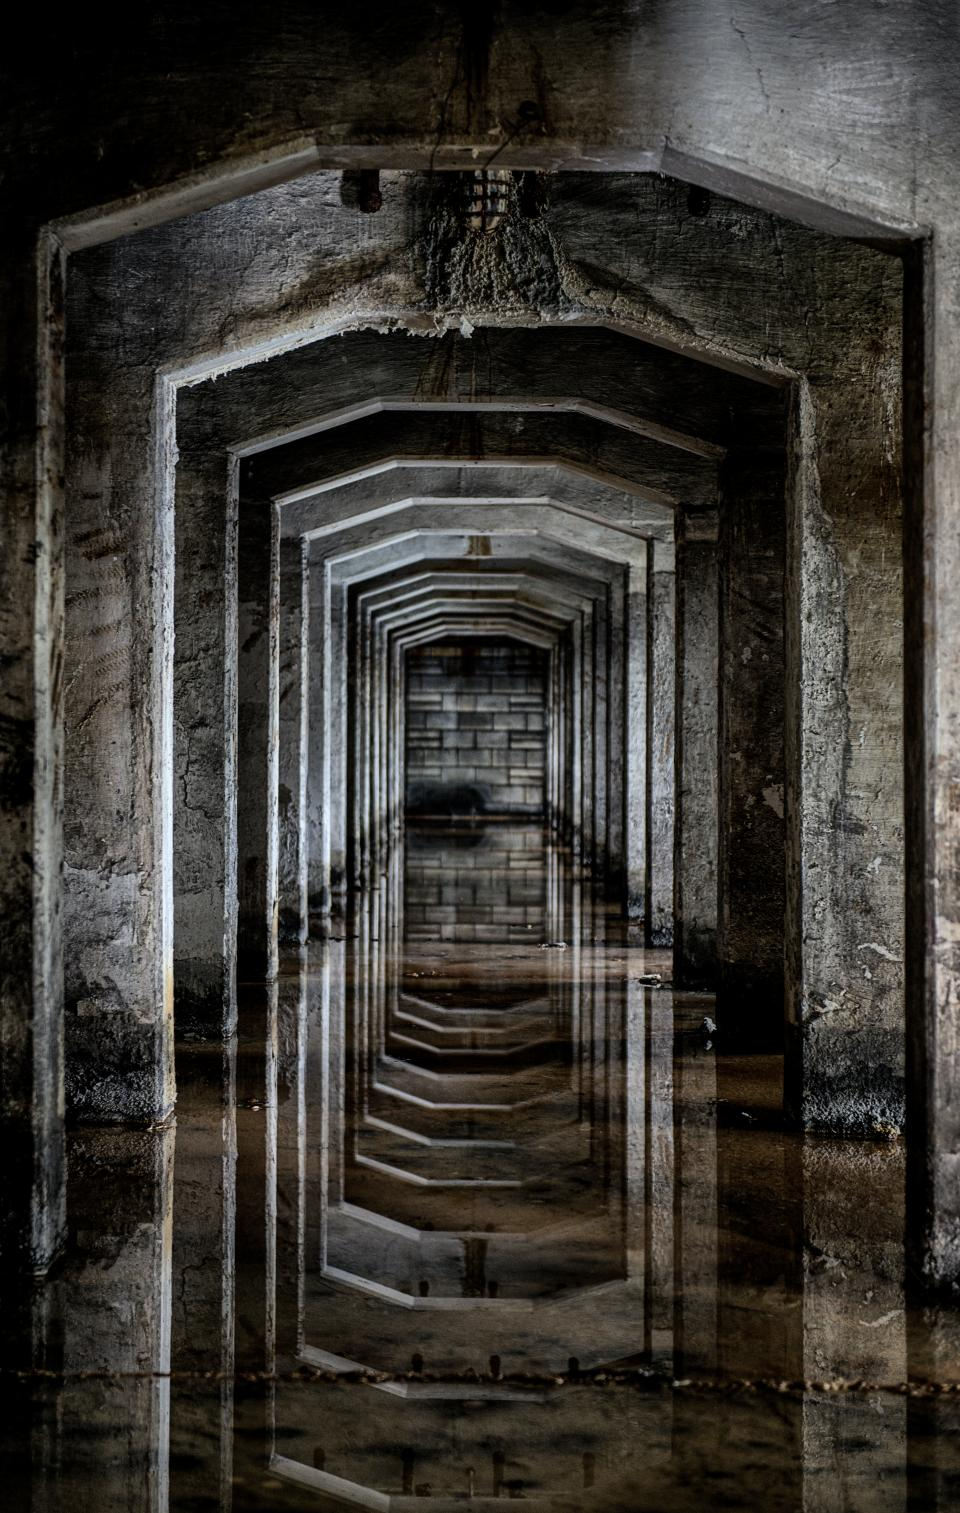 architecture building infrastructure tunnel water reflection